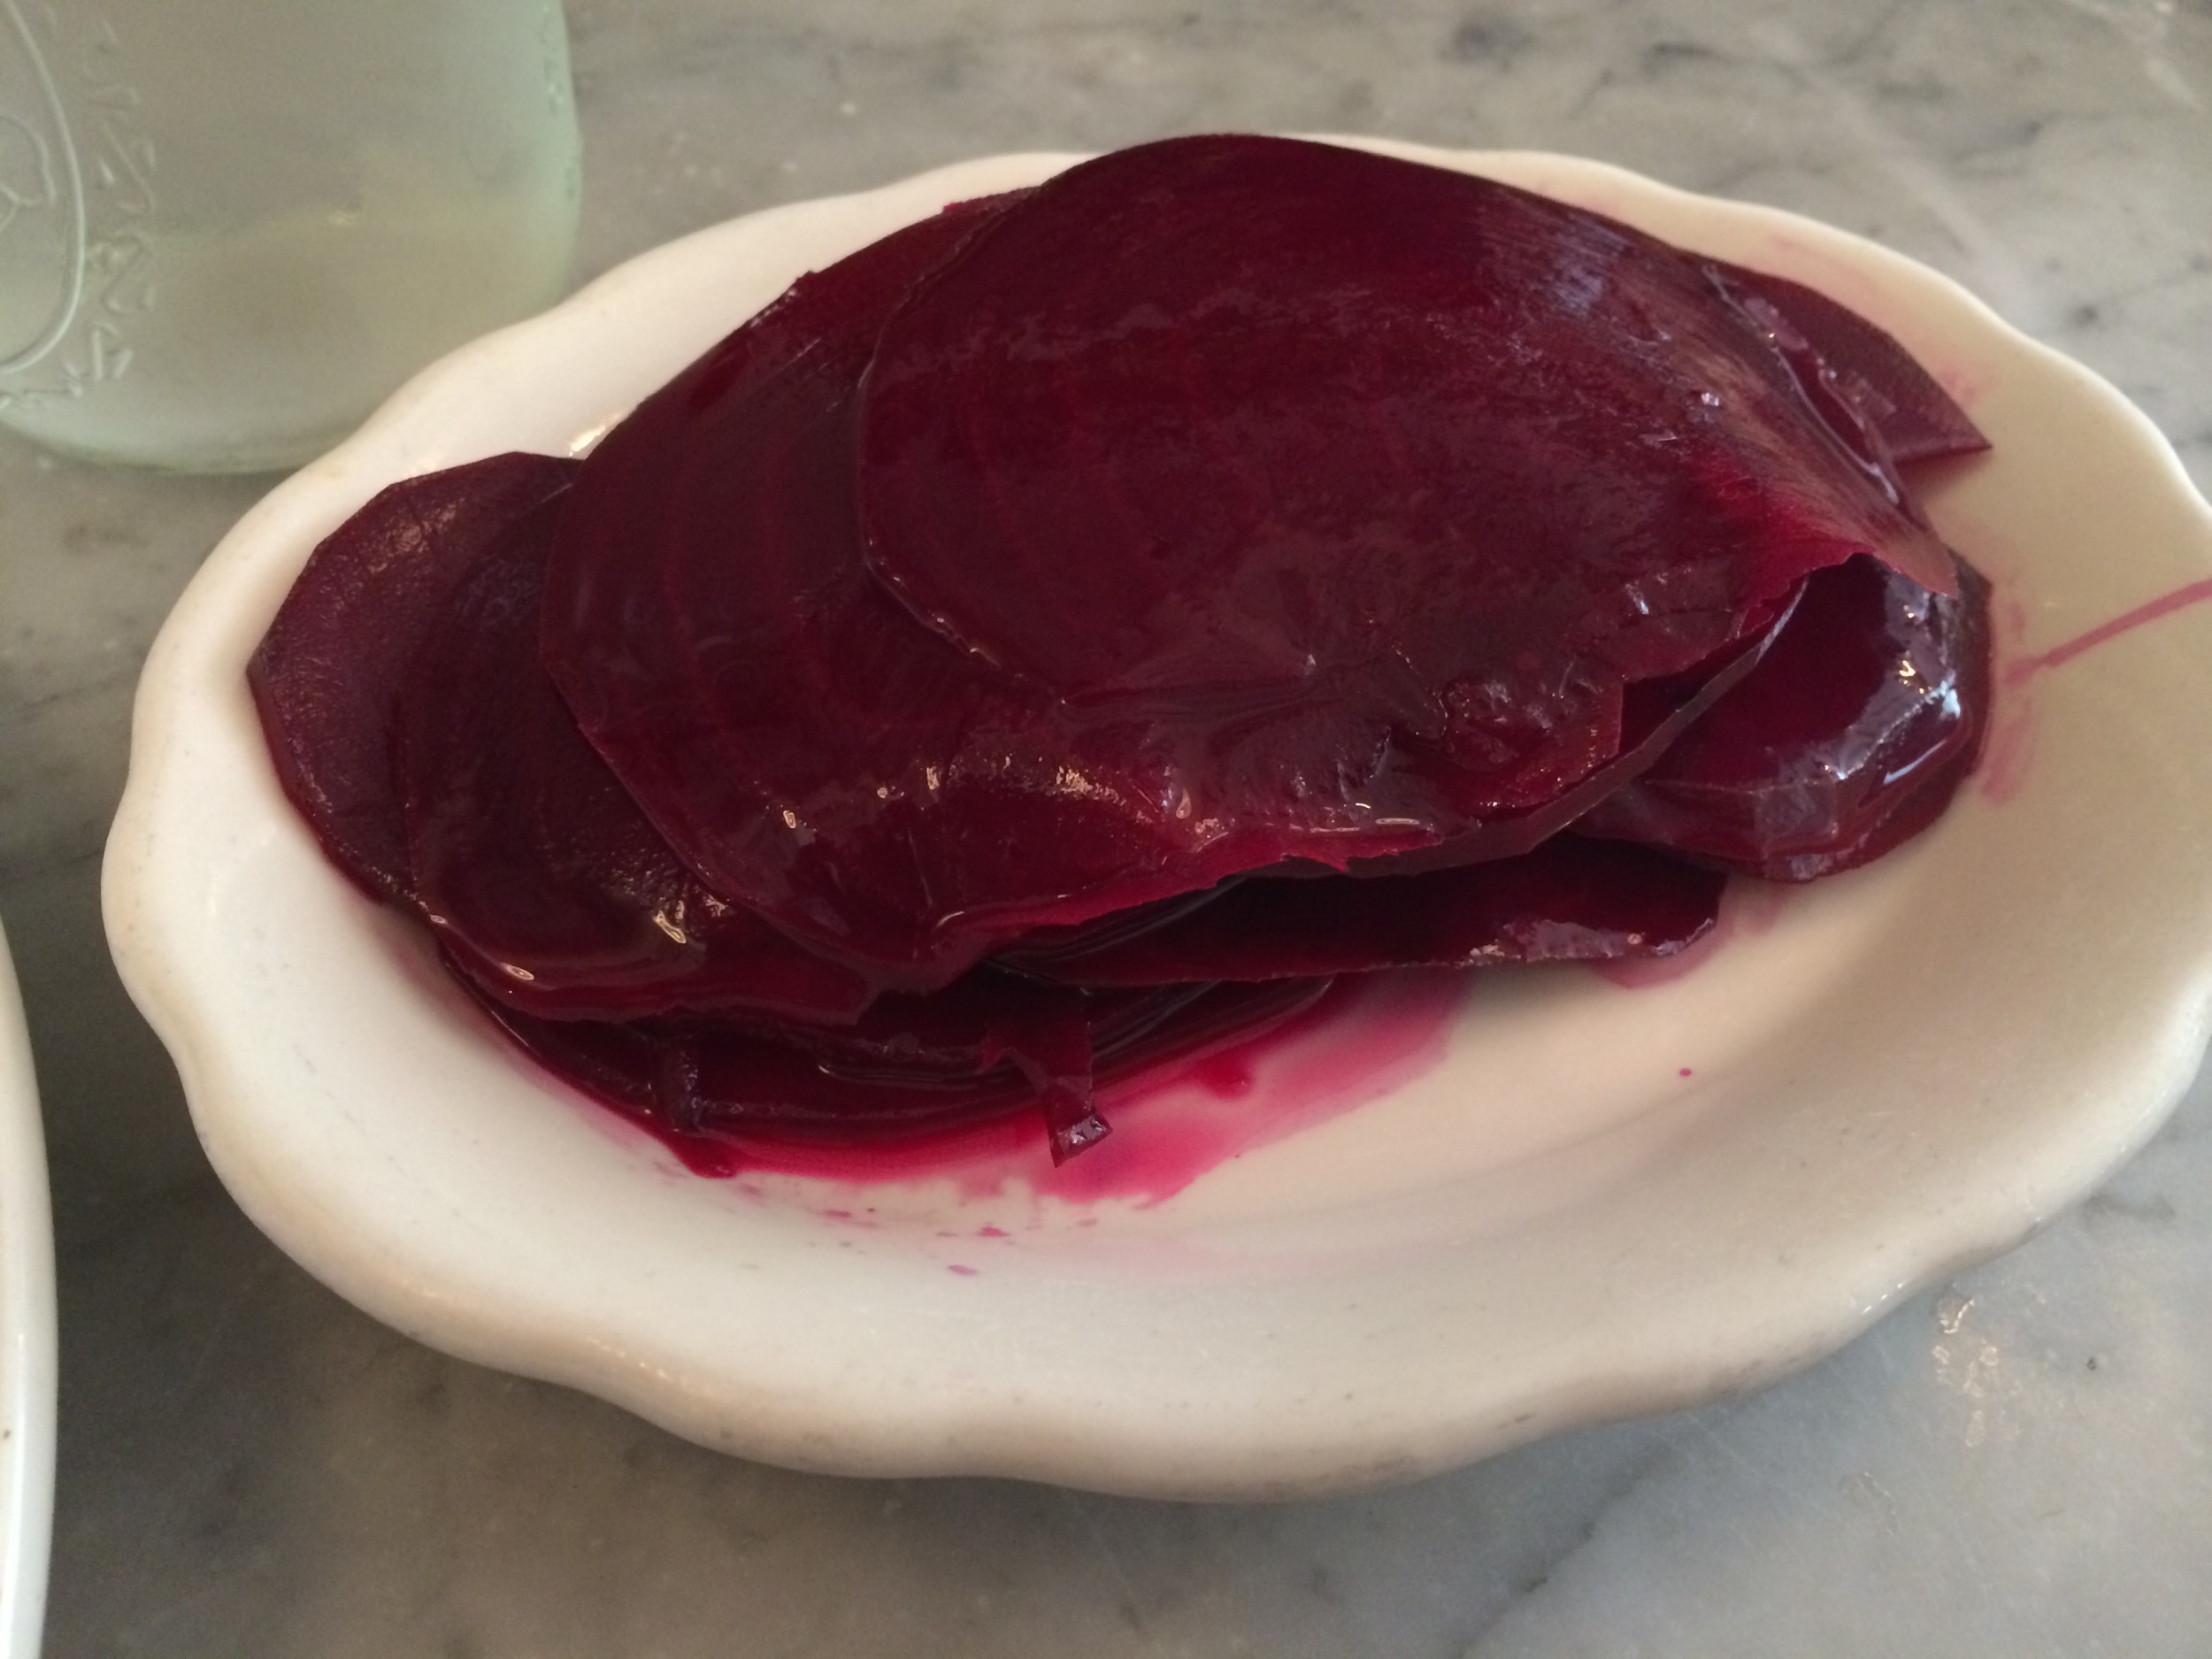 The appetizer sized portion of sweet pickled beets at Jacob's Pickles